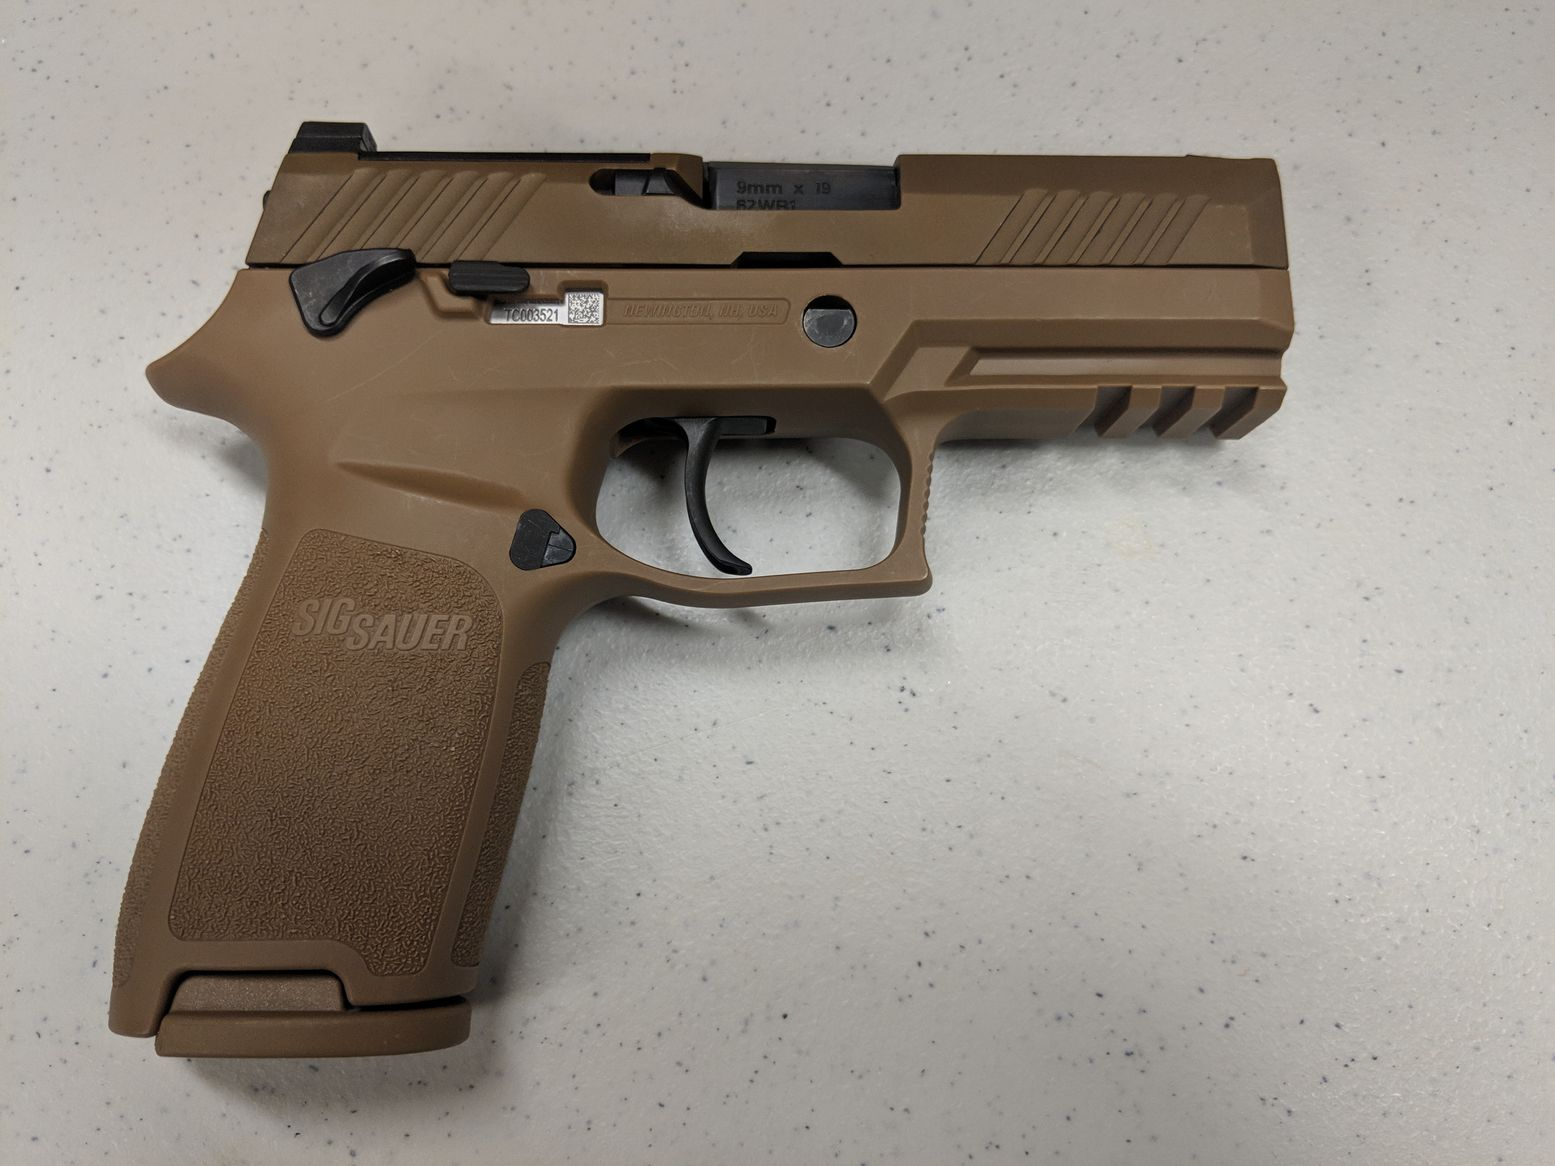 The Hot List: 5 Best 9mm Guns You Can Get Your Hands On